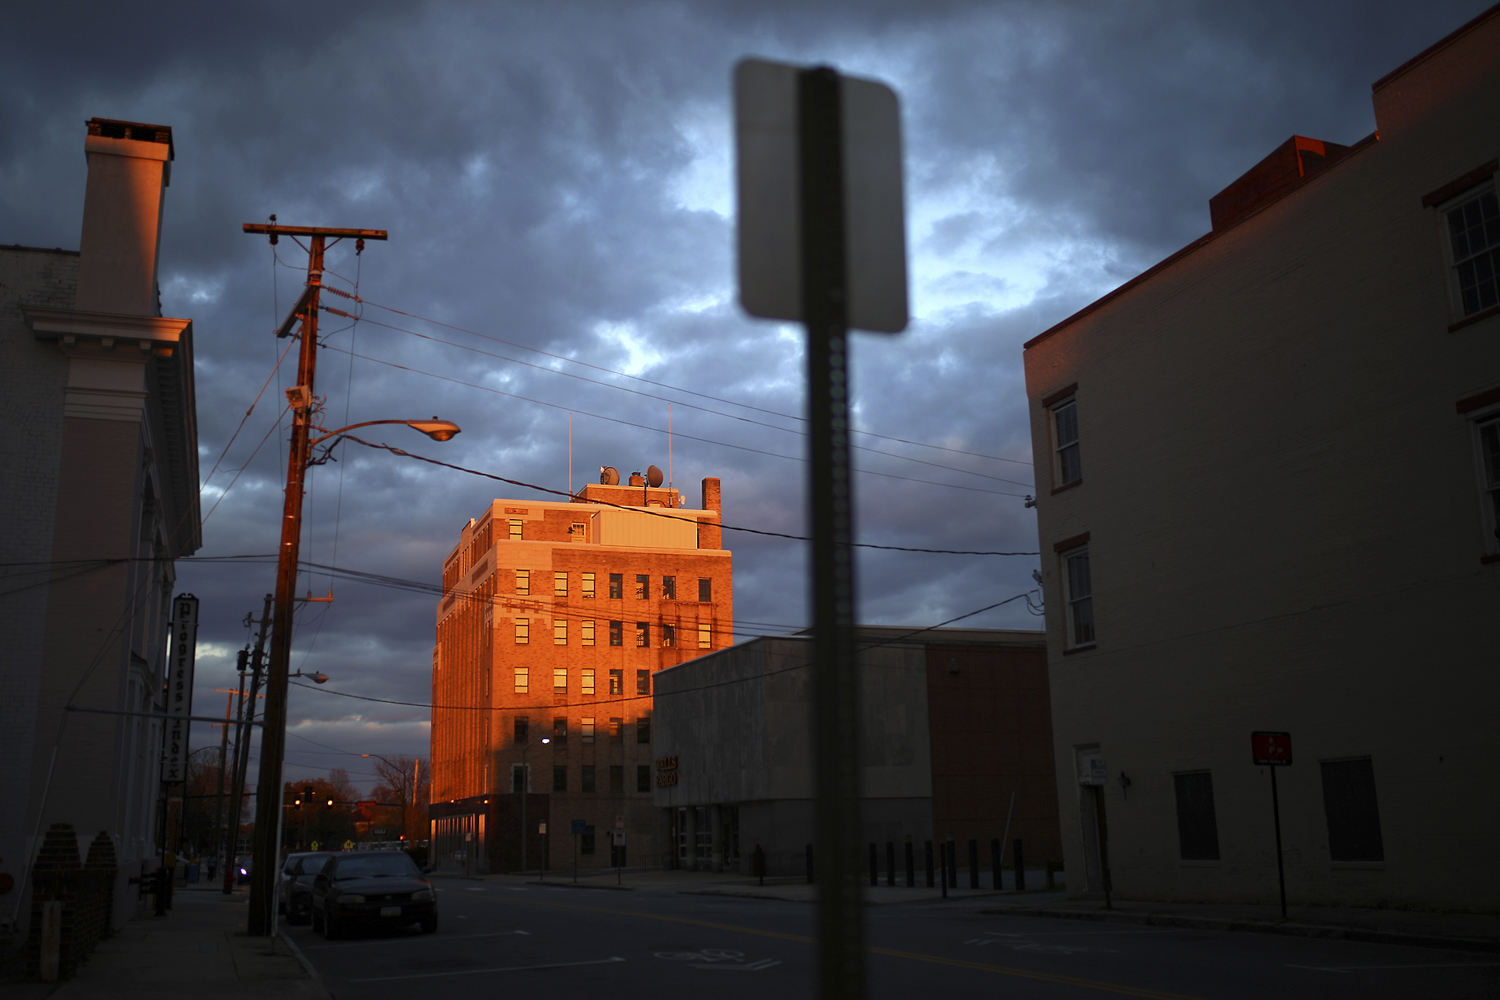 The sunset highlights the former BB&T bank building on Franklin and Adams Streets in Petersburg on Tuesday, March 14, 2017. [Scott P. Yates/progress-index.com]